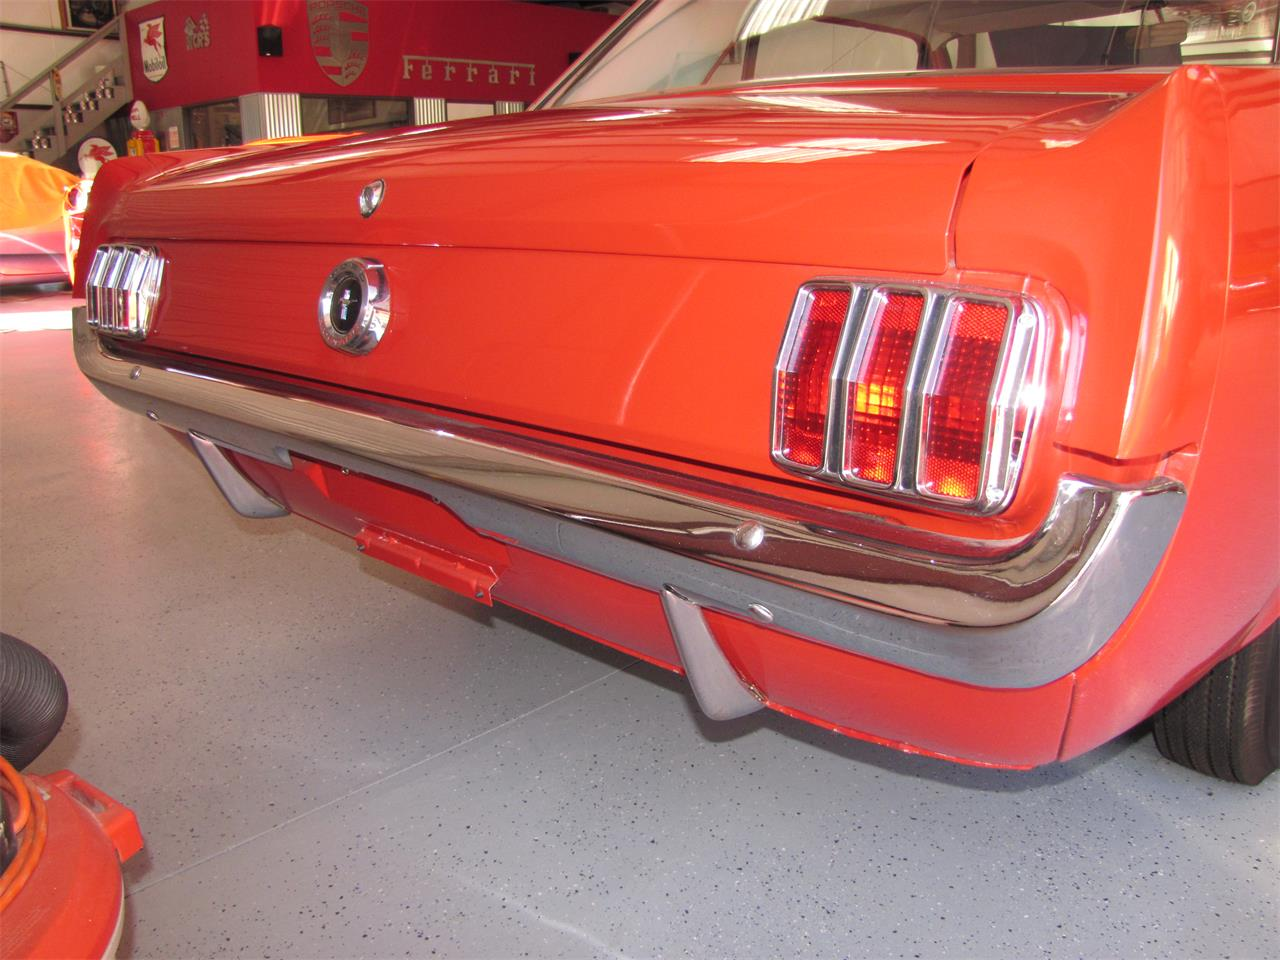 Large Picture of Classic '65 Mustang located in California - $23,500.00 Offered by a Private Seller - Q6BT